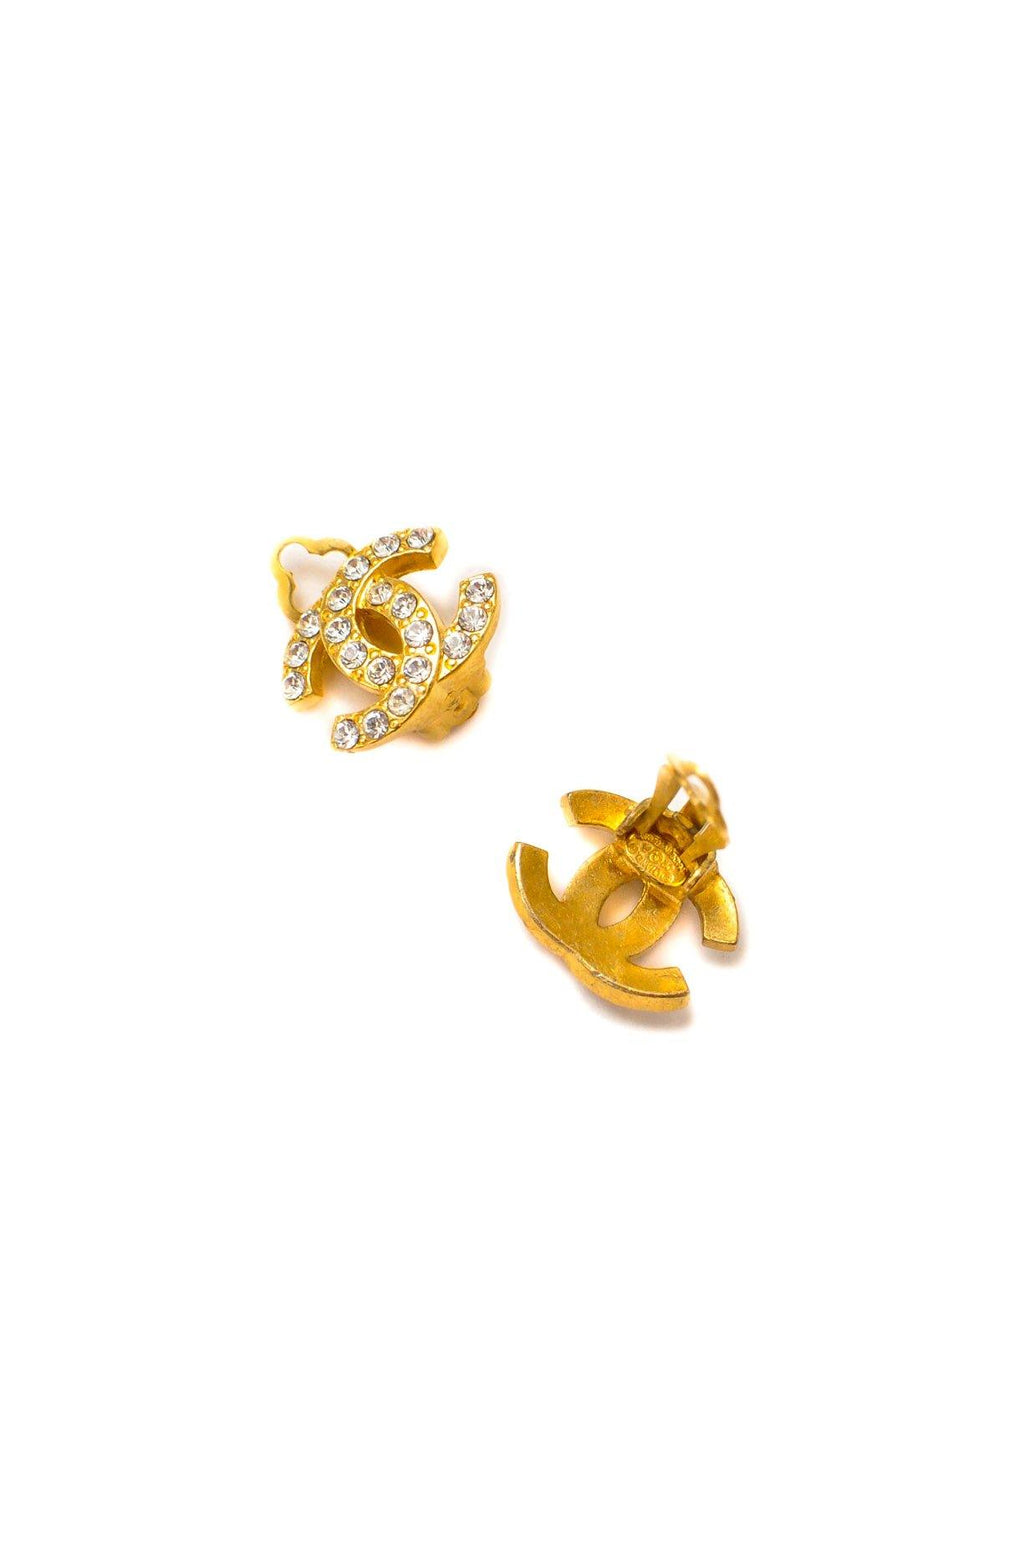 Chanel Rhinestone CC Clip-on Earrings